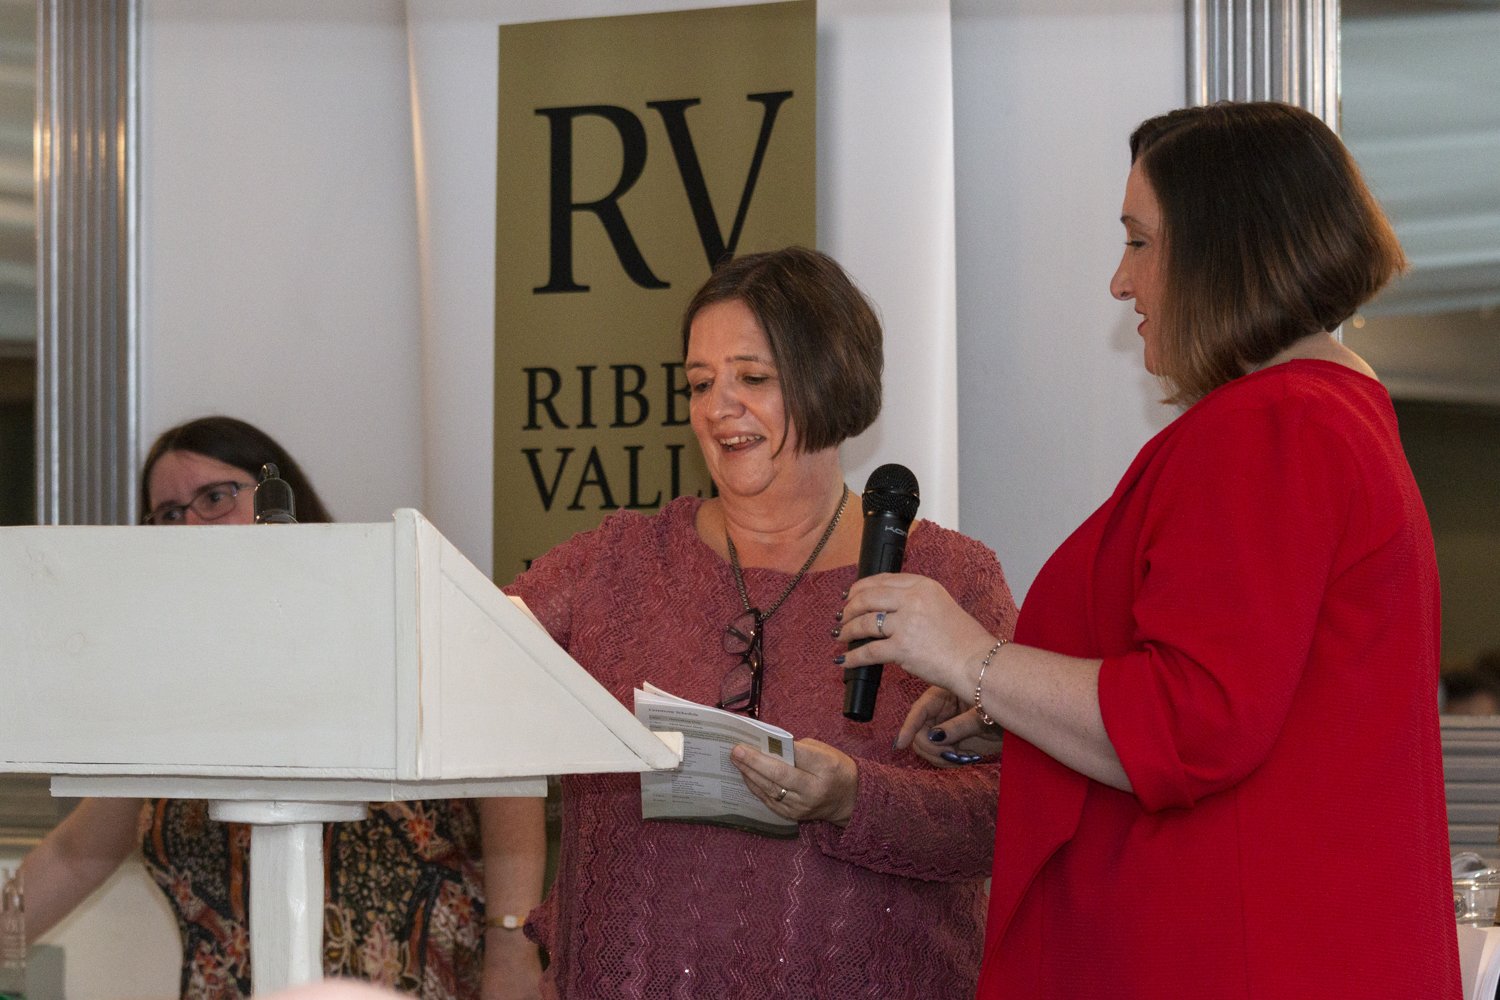 Ribble Valley Business Awards Presentation